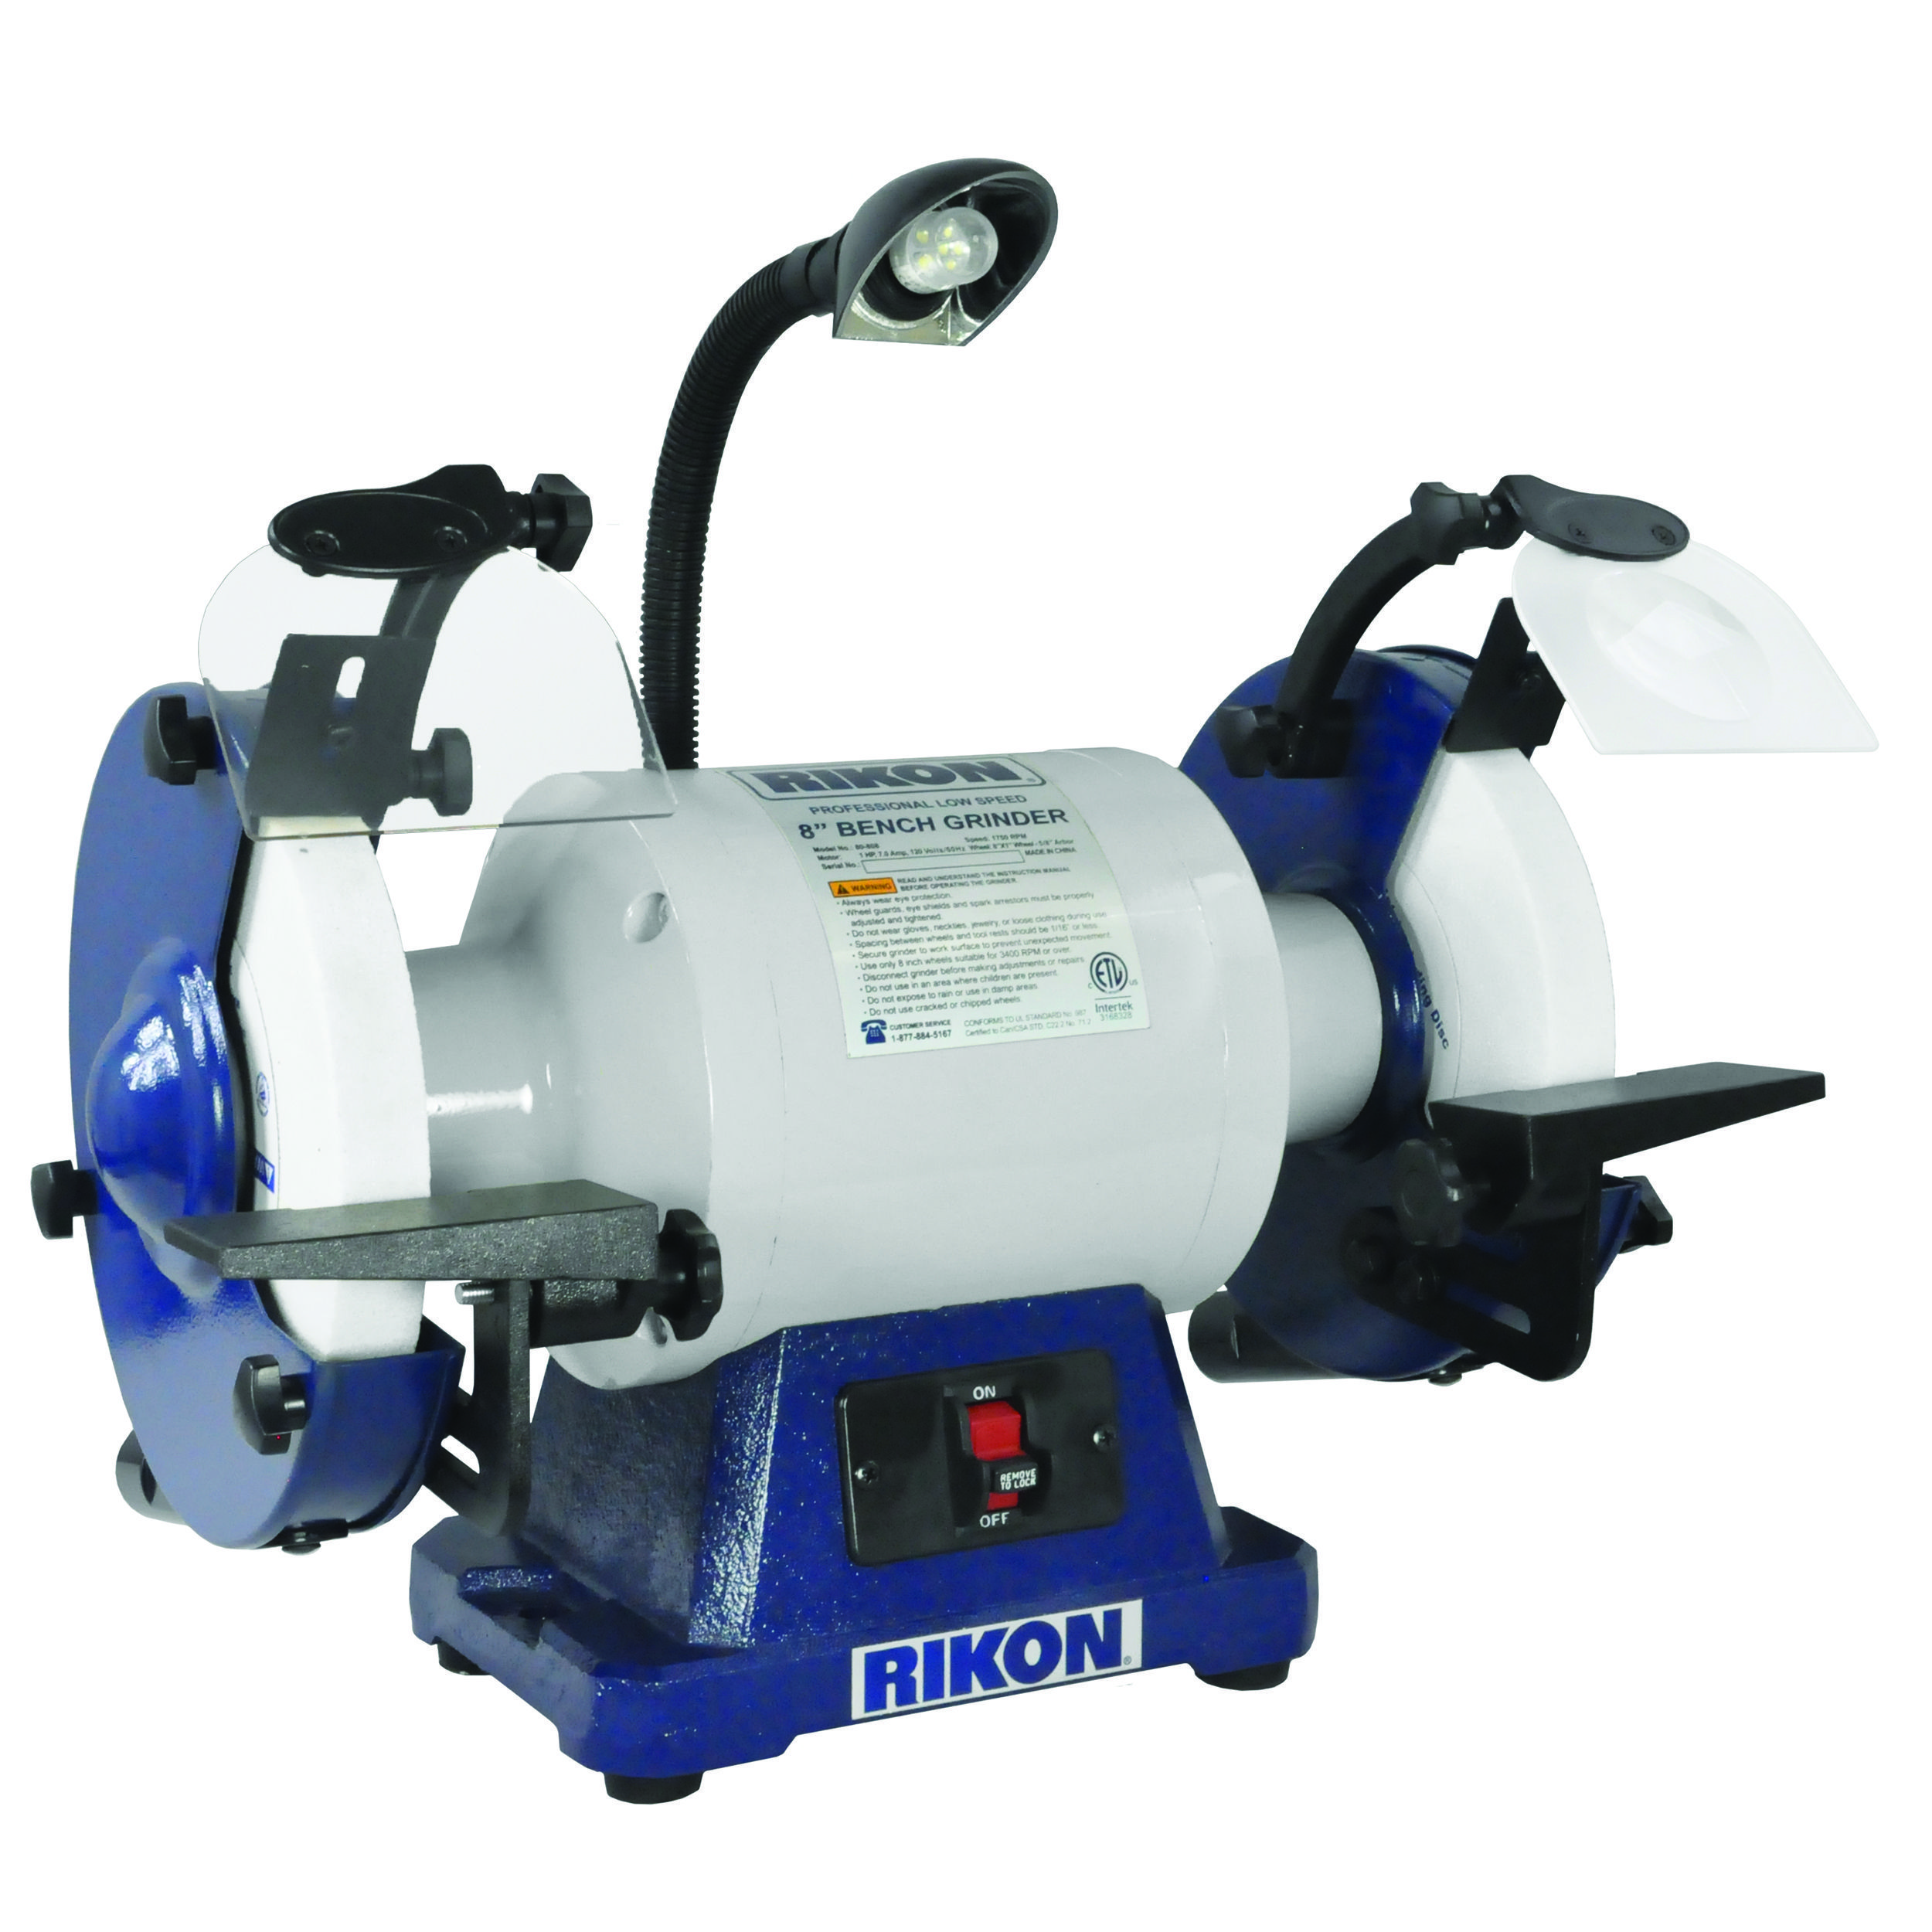 8 1 Hp Slow Speed Grinder 80 808 If You Are On The Market For A Best Bench Grinder Fro Your Workshop Or Garage You Need In 2020 Bench Grinder Bench Grinders Grinder